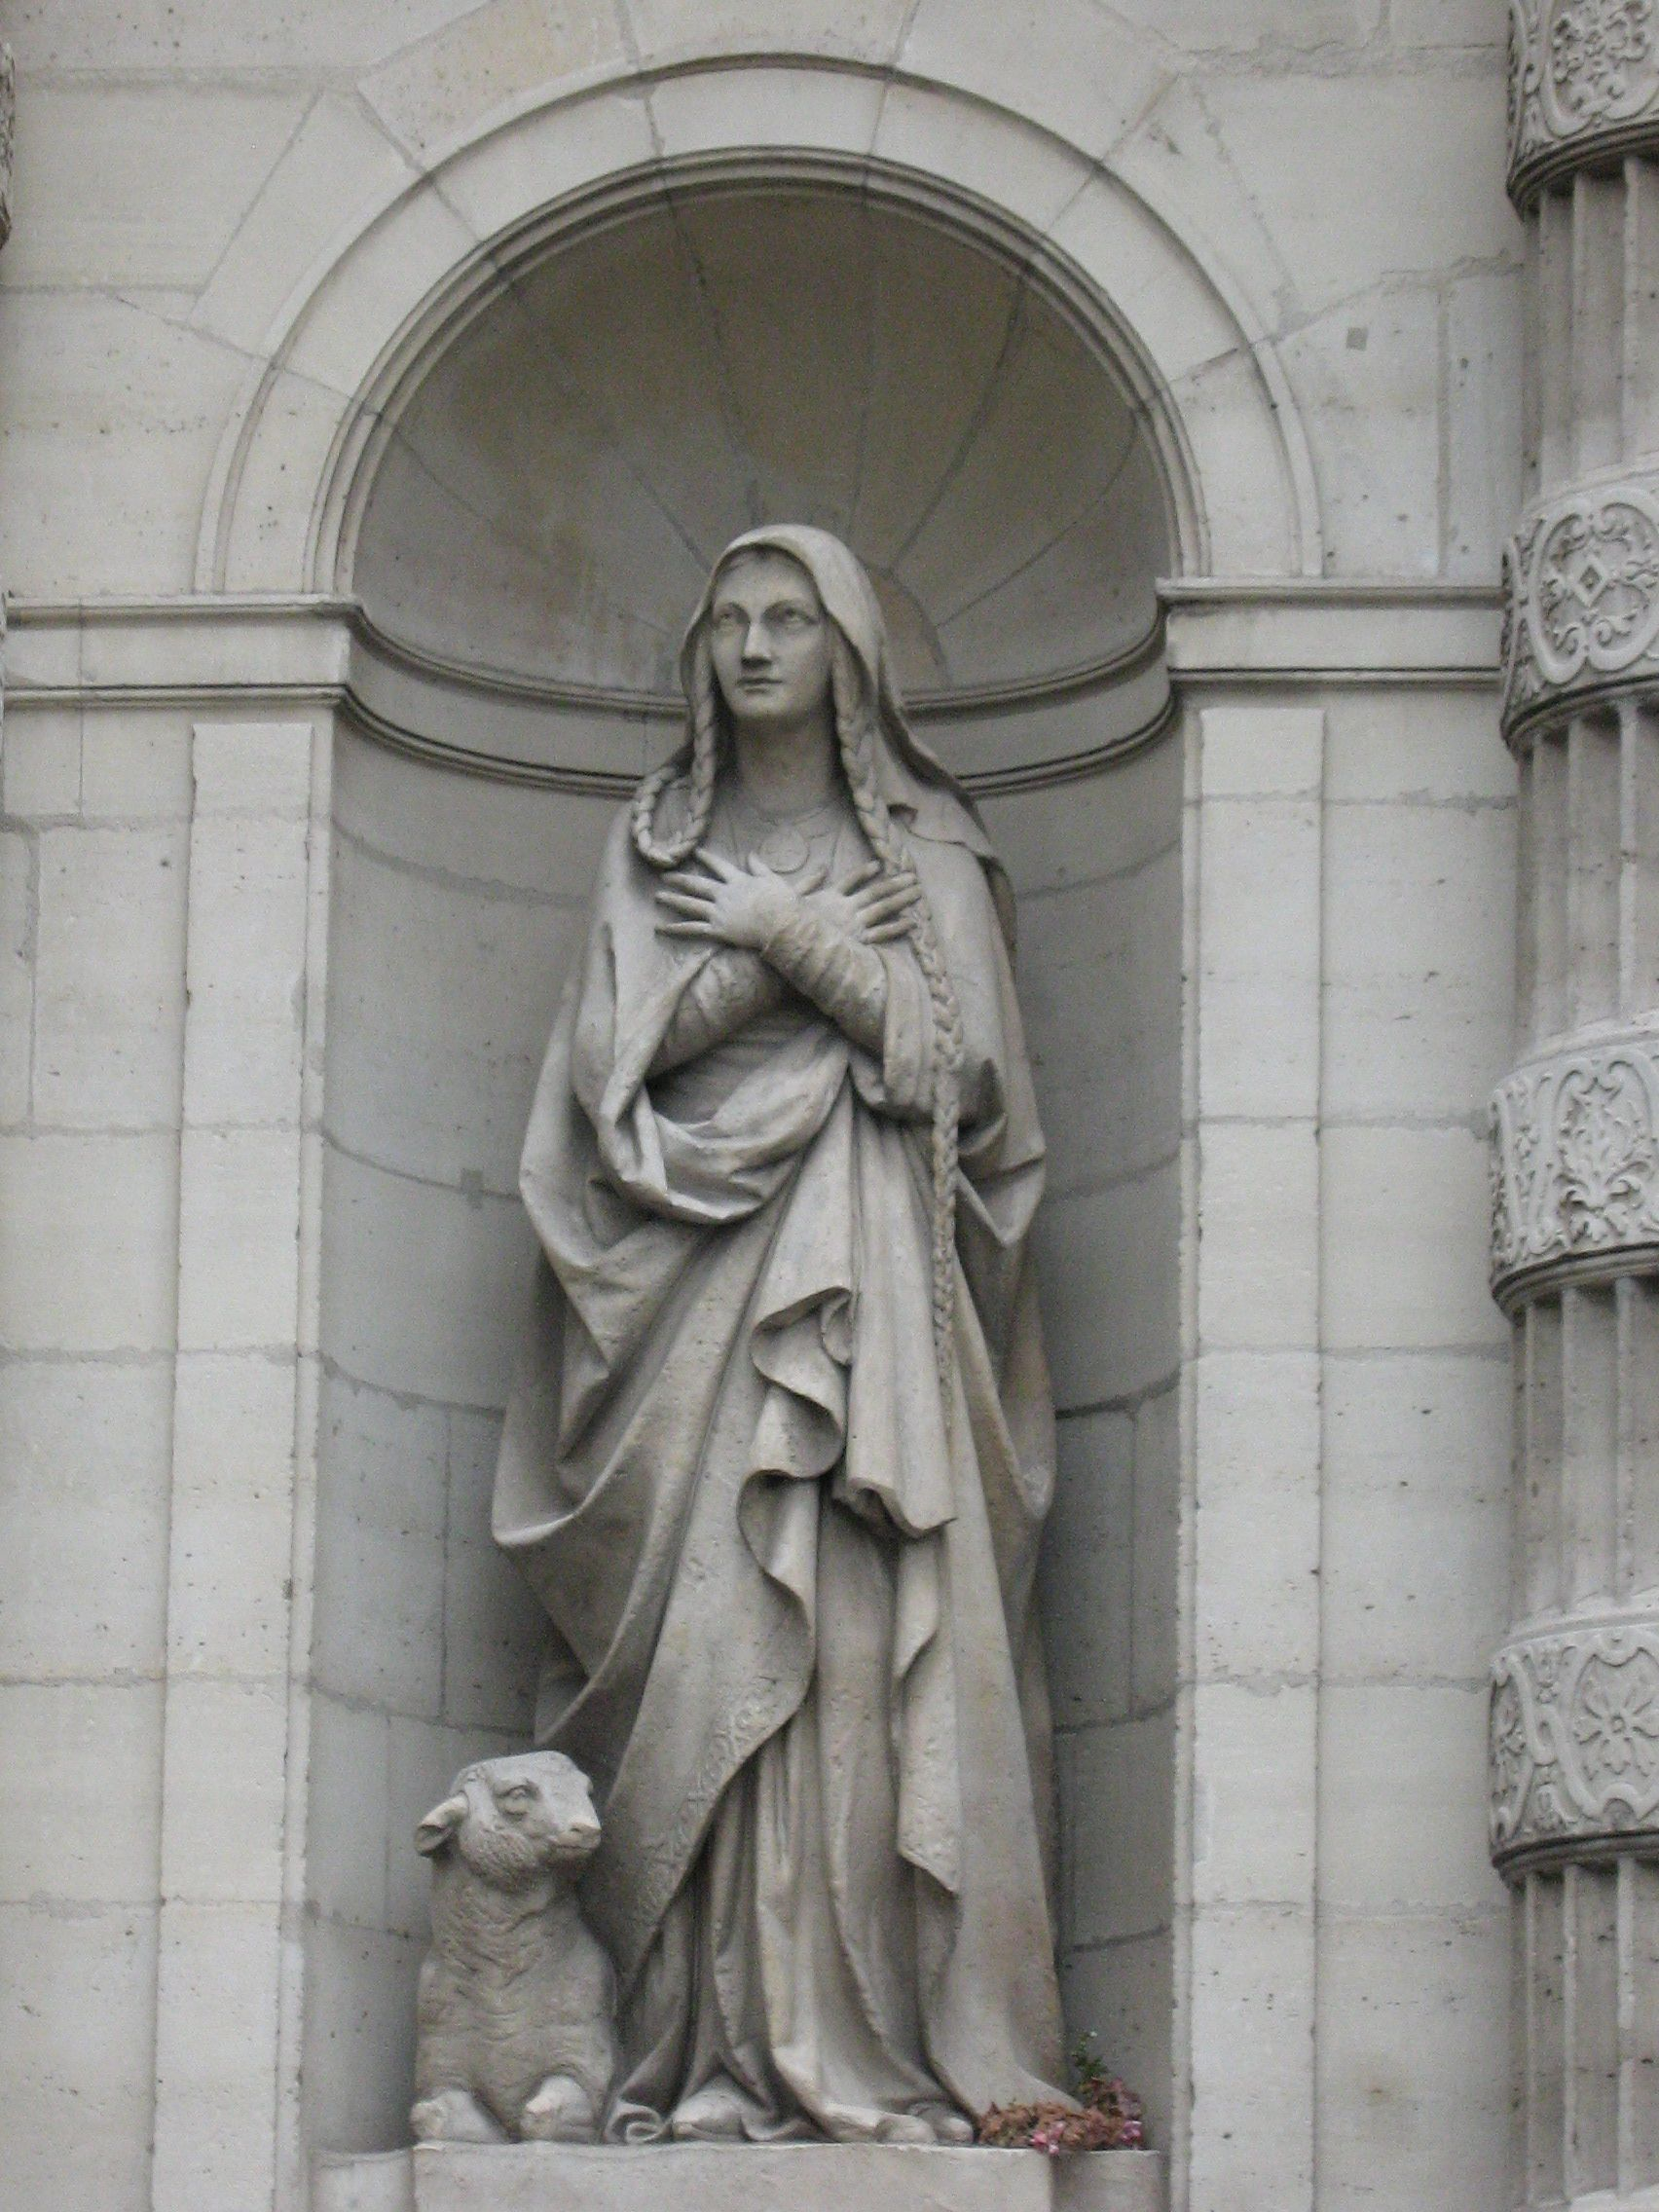 Paris Architecture, France, St Etienne du Mont Statue